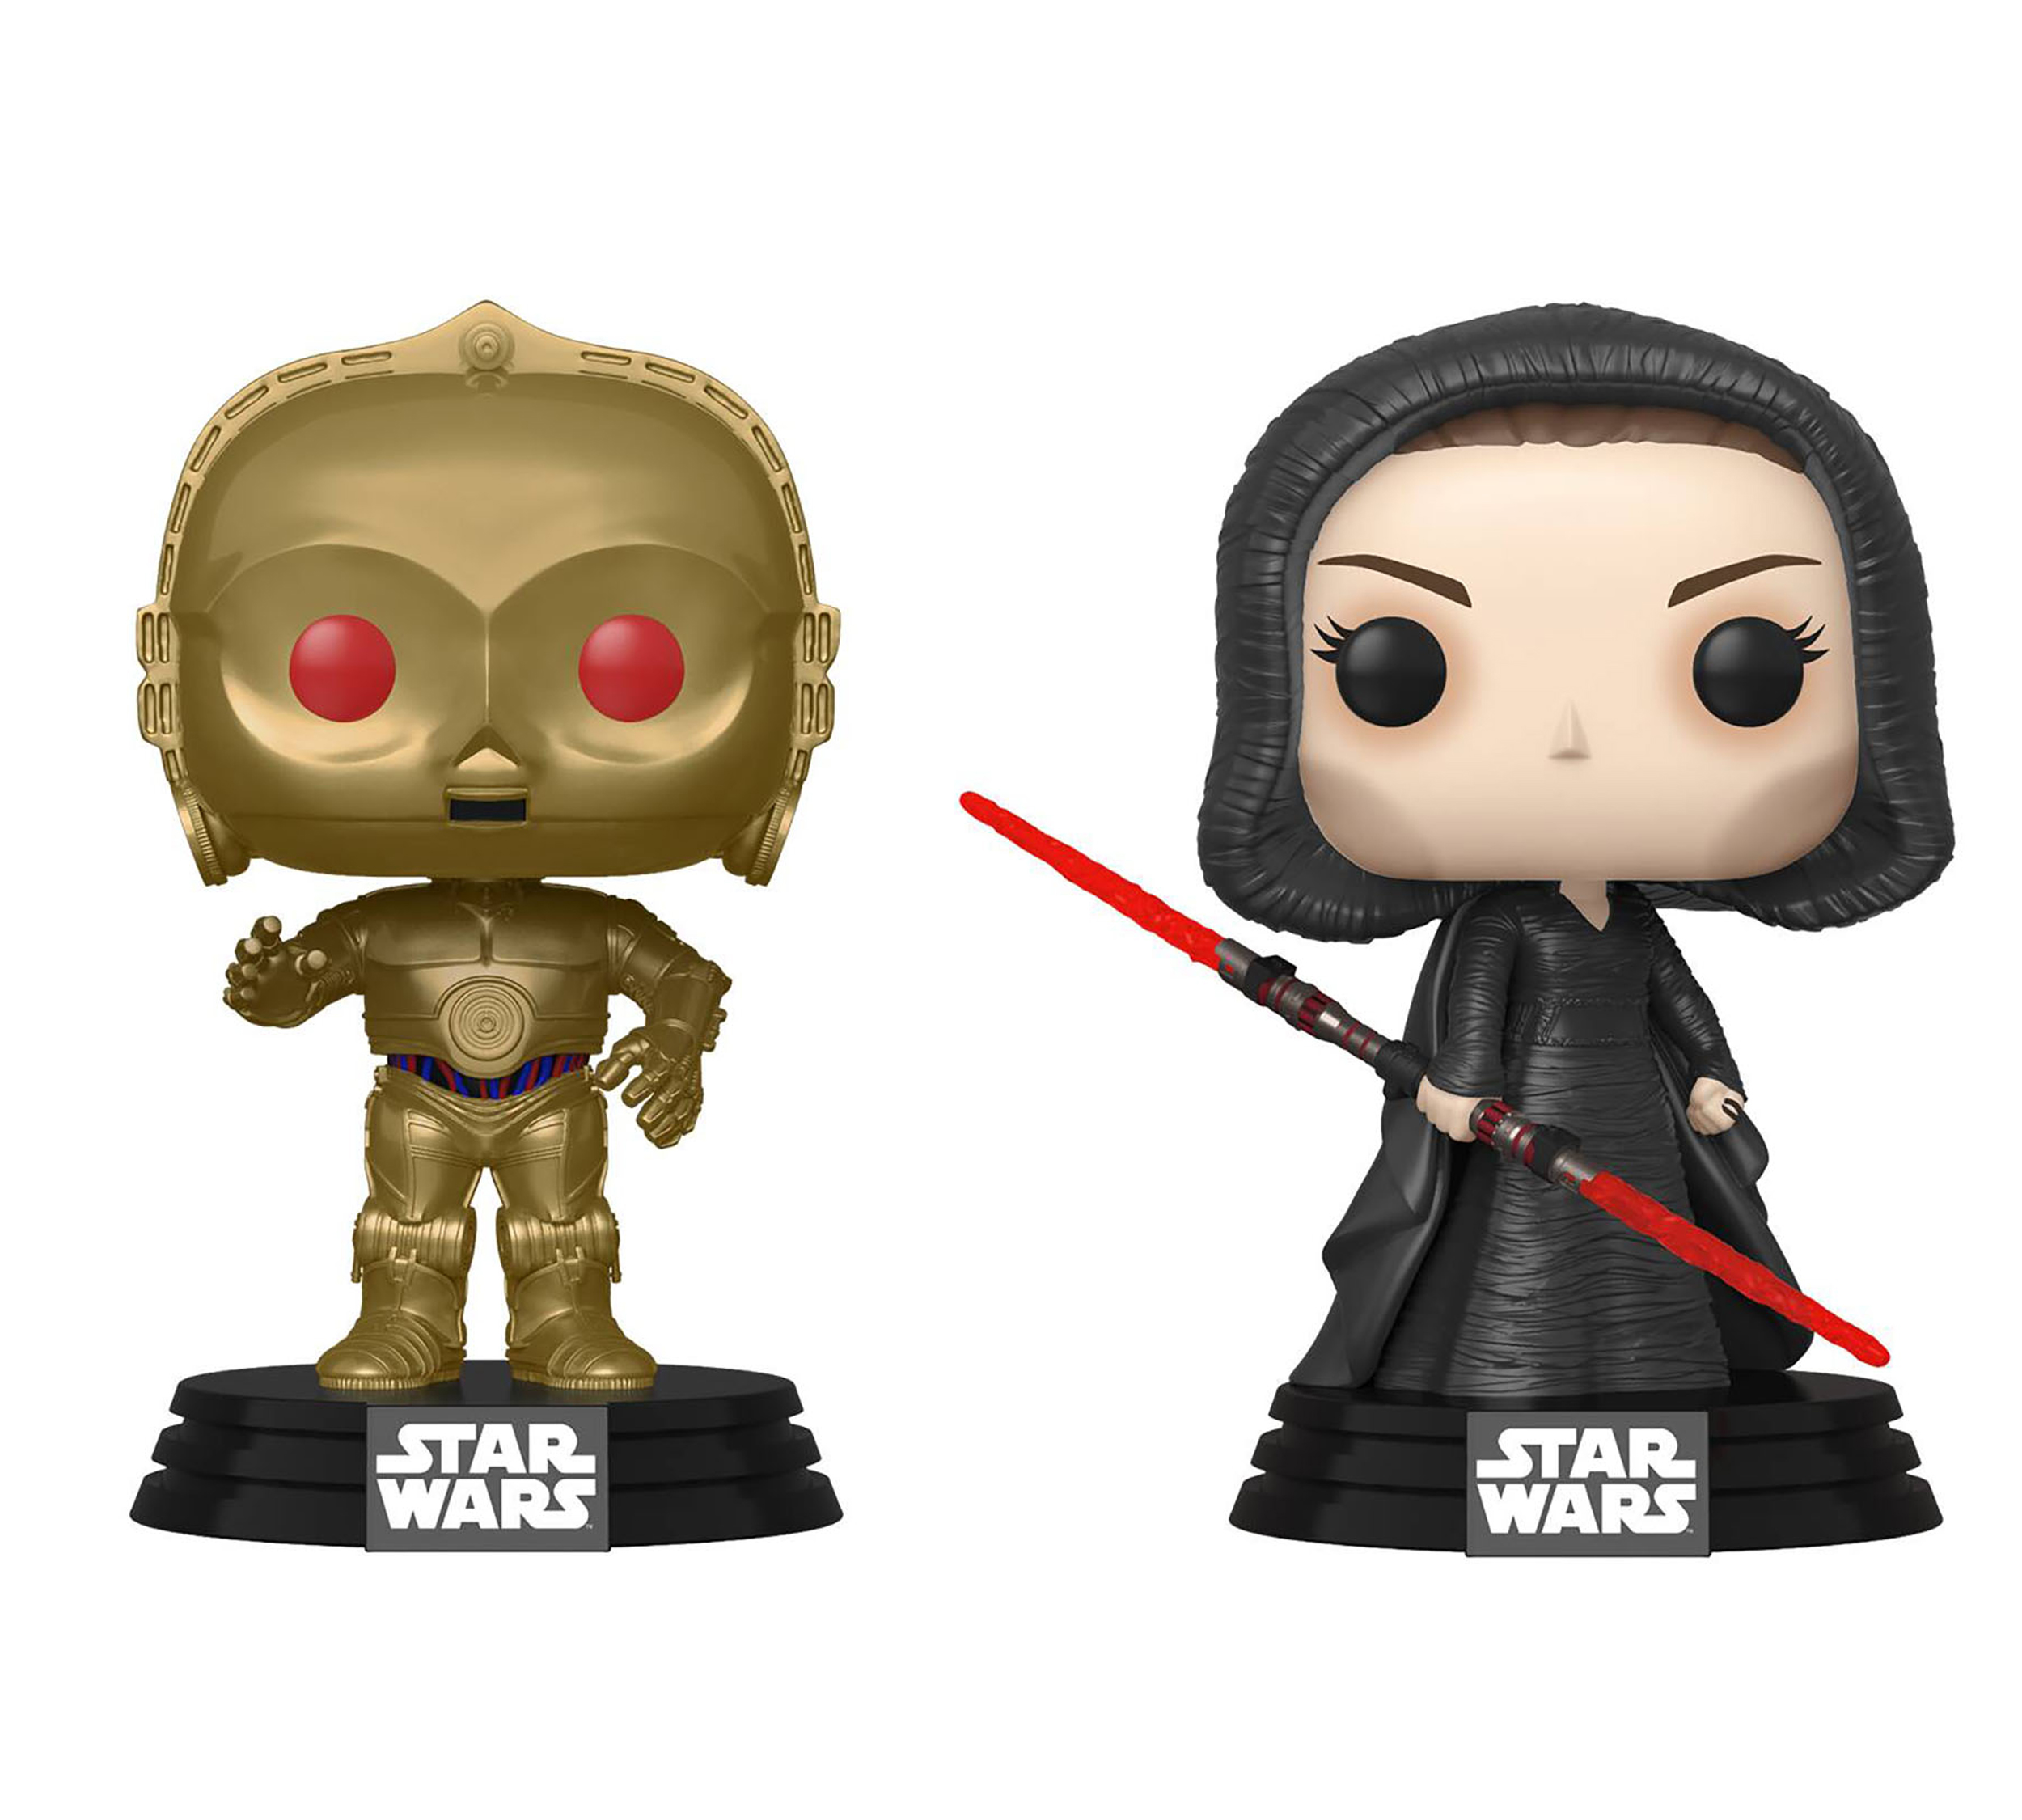 TROS Dark Rey and C-3PO (Red Eyes) Bobble Head Toy 2-Pack 1